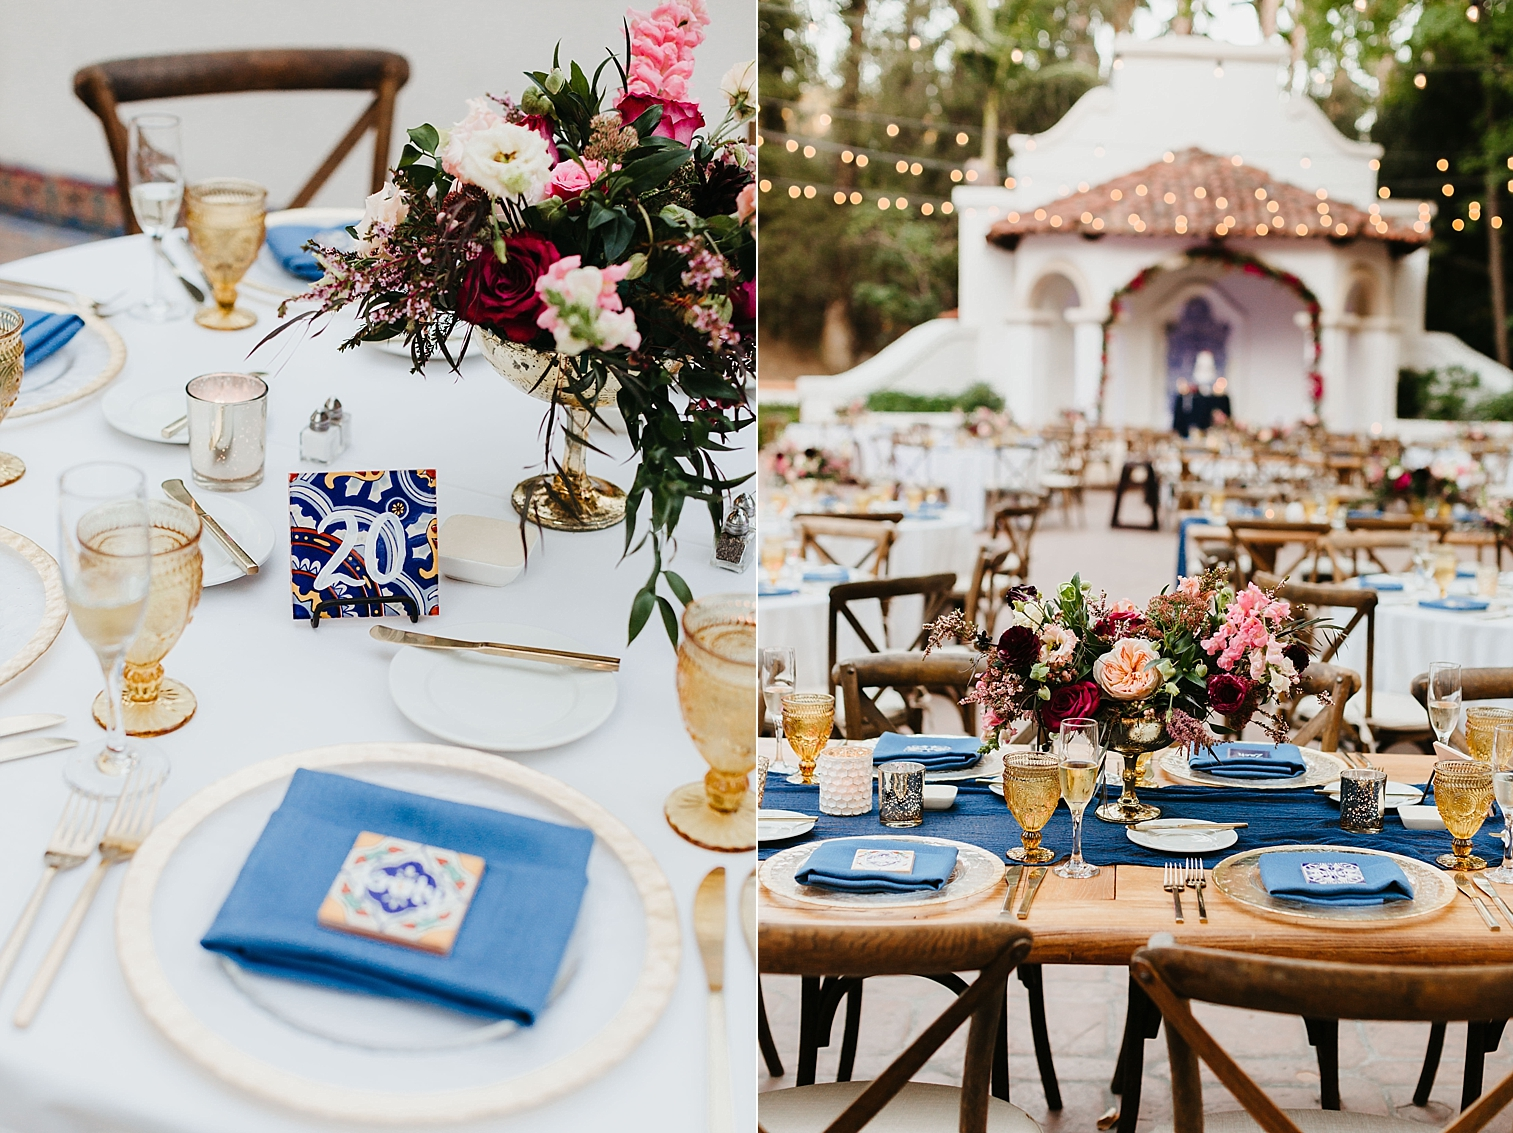 Rancho-Las-Lomas-Wedding-100.jpg